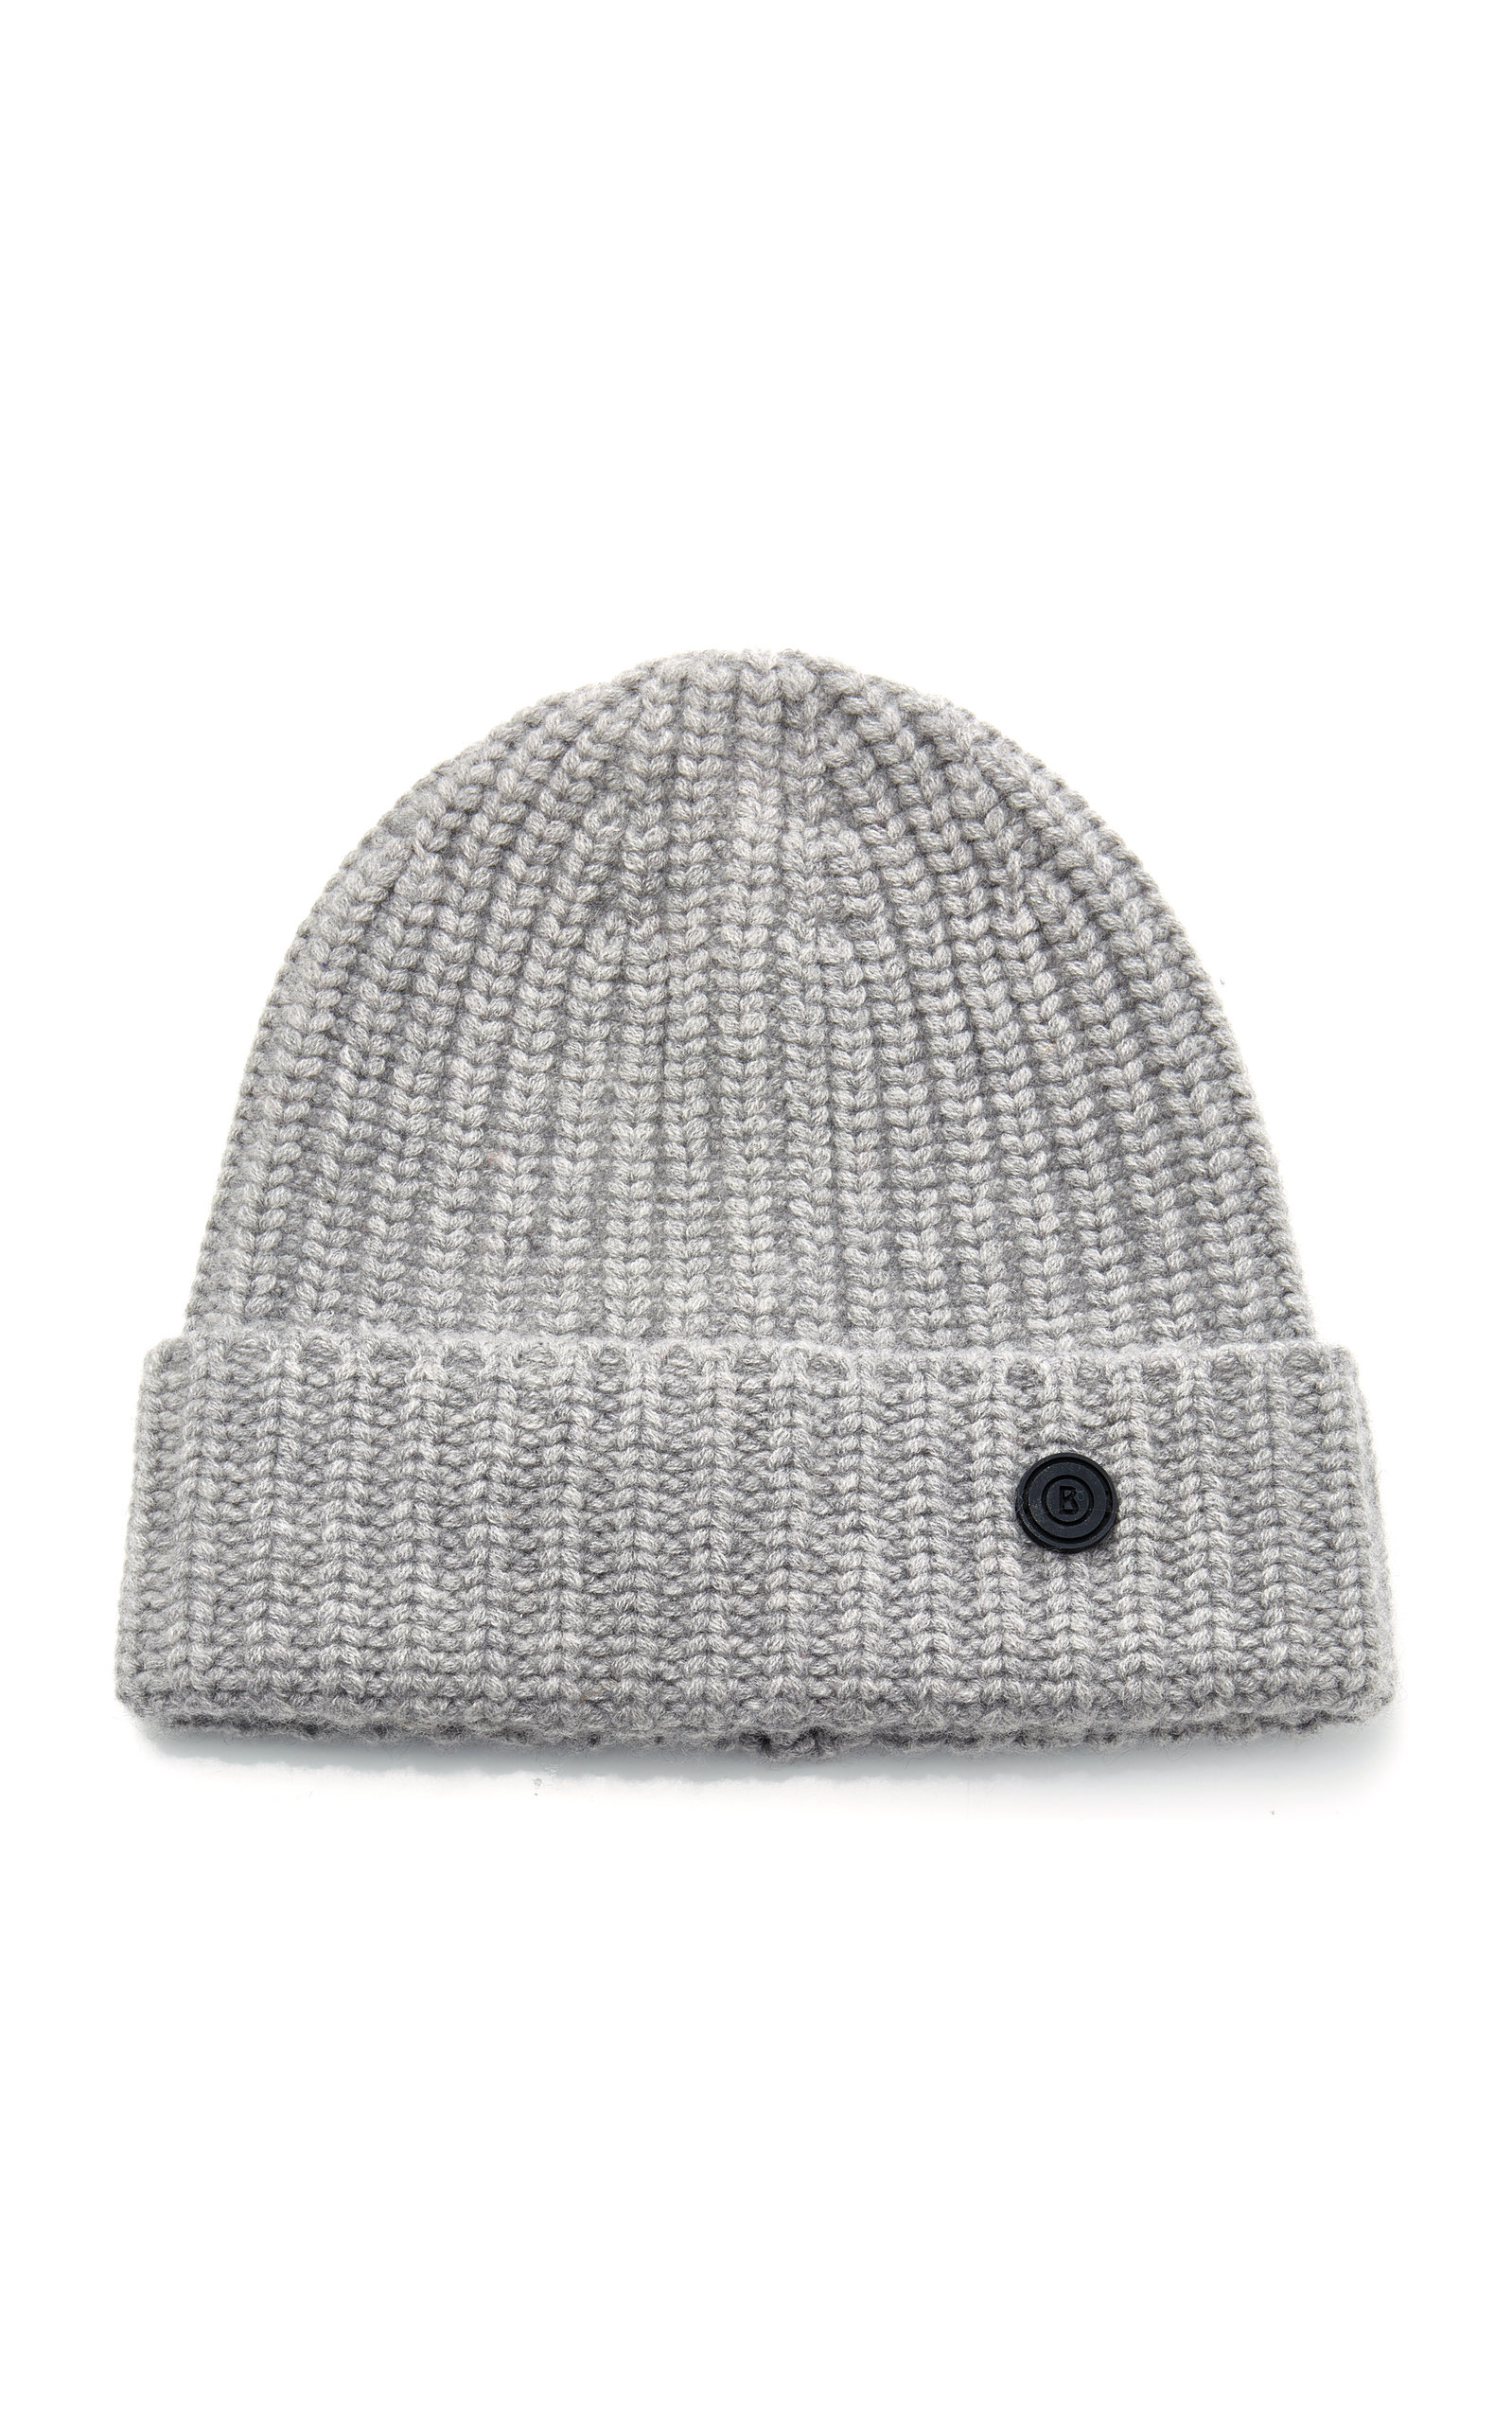 BOGNER X WHITE CUBE Candela Ribbed Cashmere Beanie in Grey